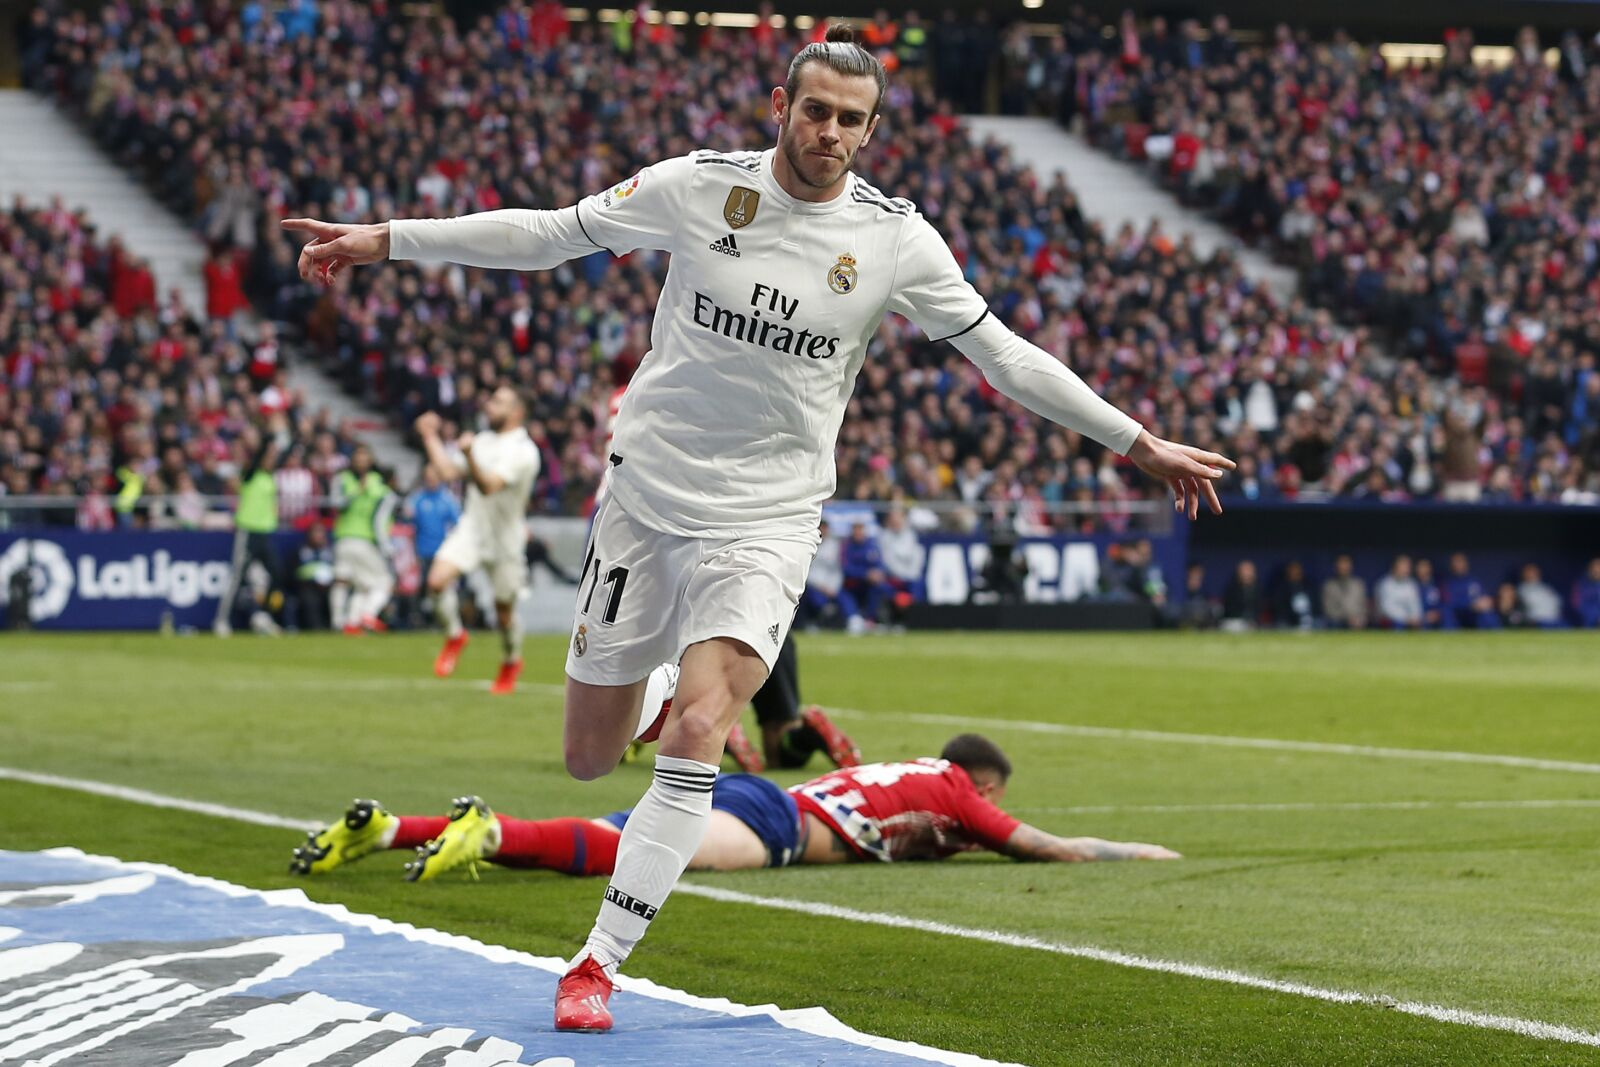 Was Gareth Bale worth the money for Real Madrid?